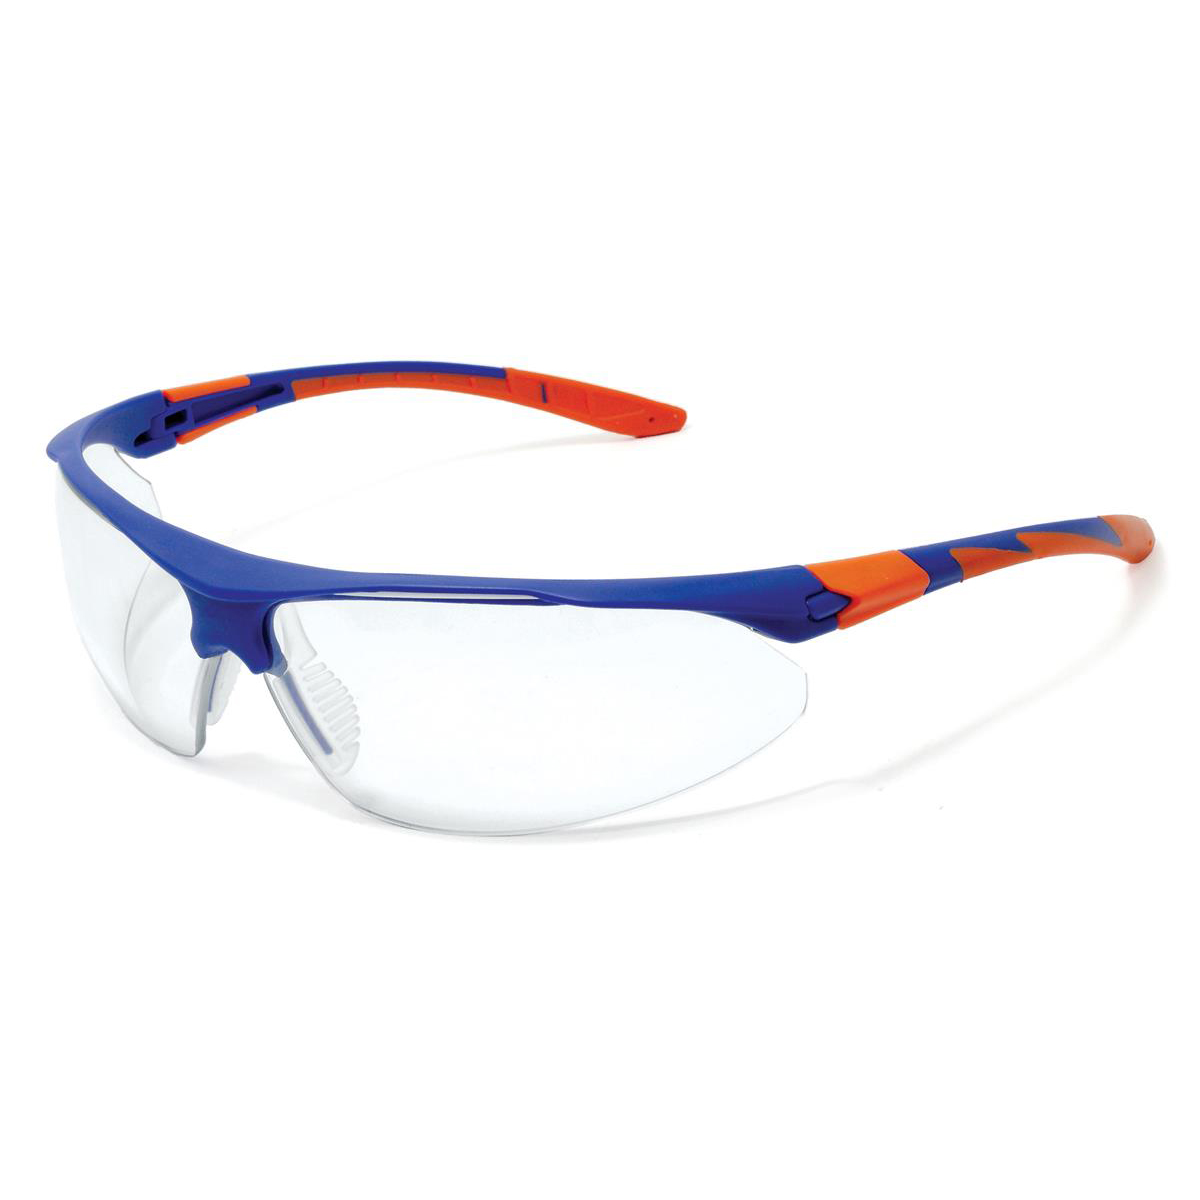 JSP Stealth 9000 Safety Spectacles Adjustable 25g EN166 1.F. Standard Ref ASA770-15N-800